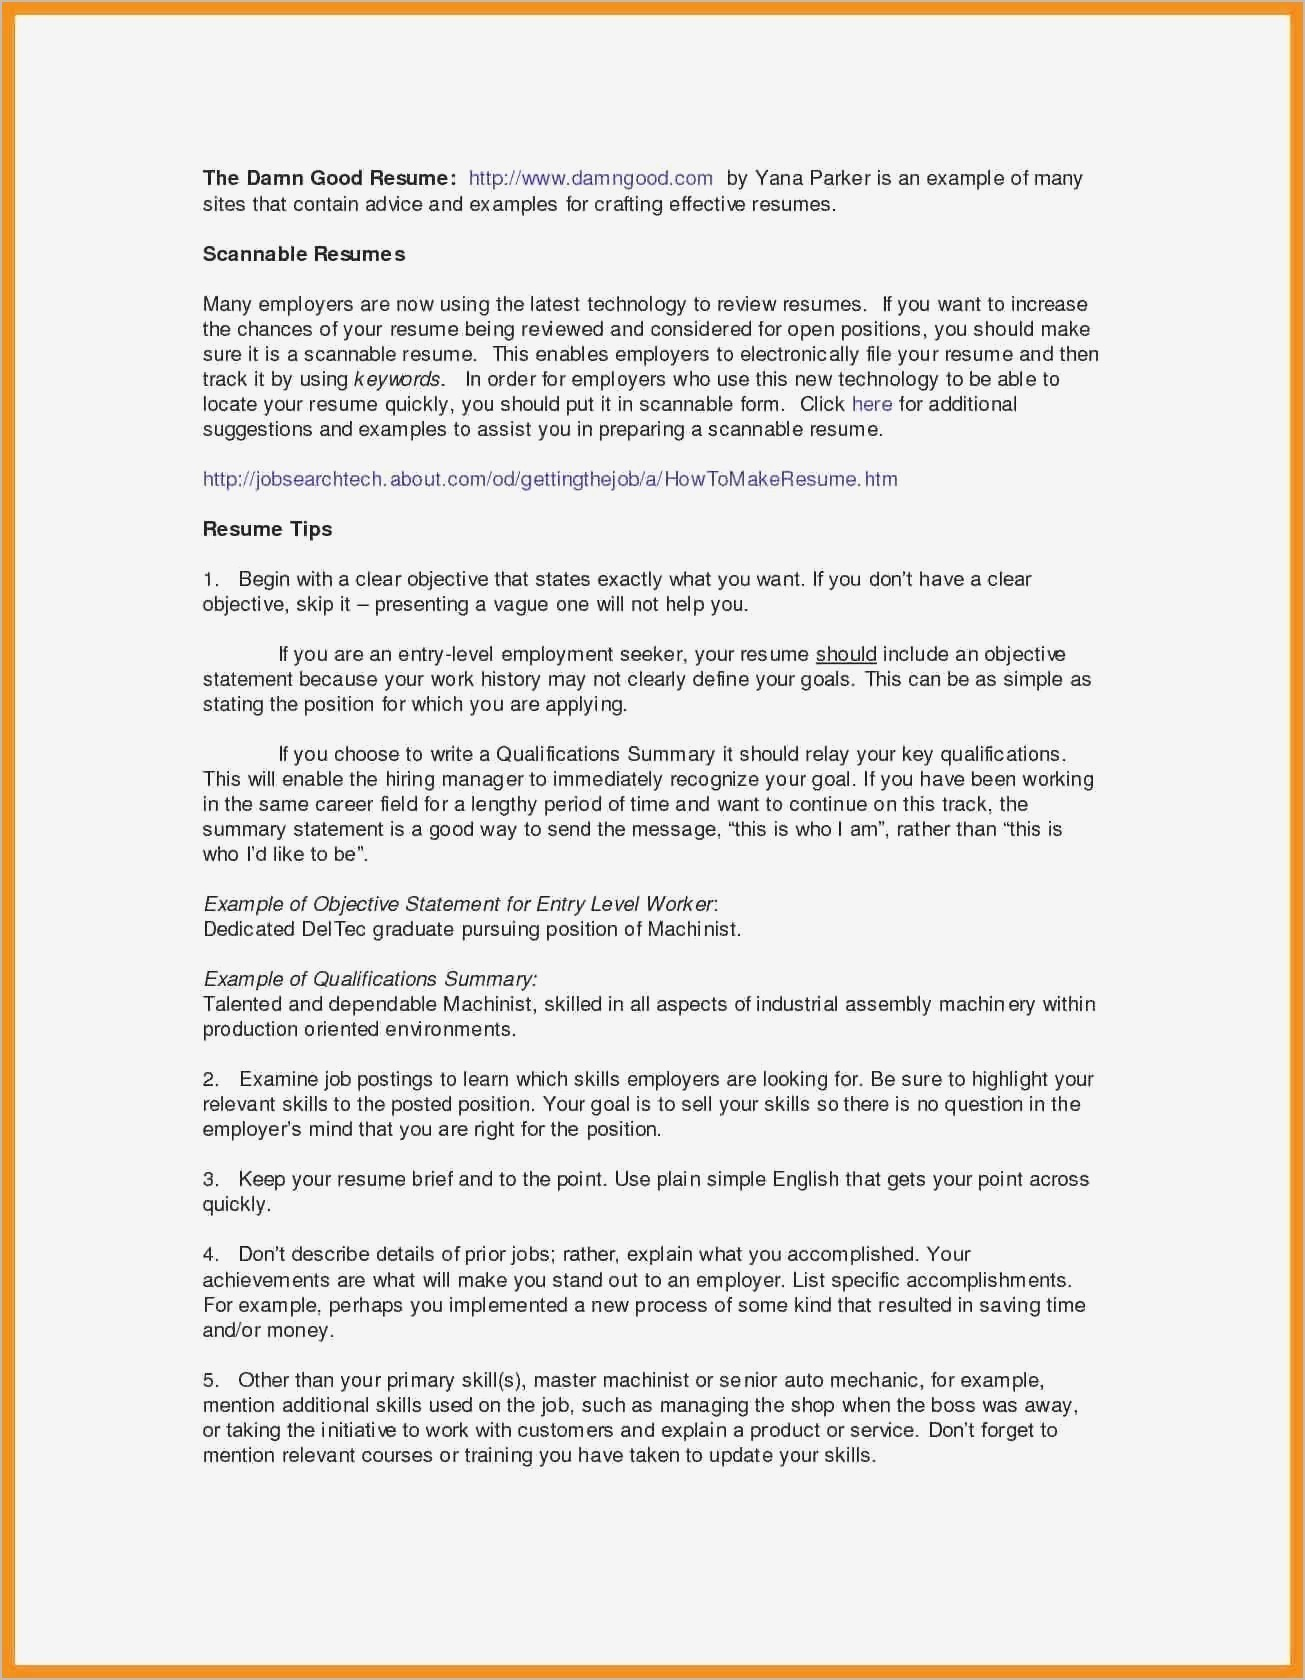 Professional Accountant Resume - Accounting Job Cover Letter Fresh Resume Sample Chartered Accountant